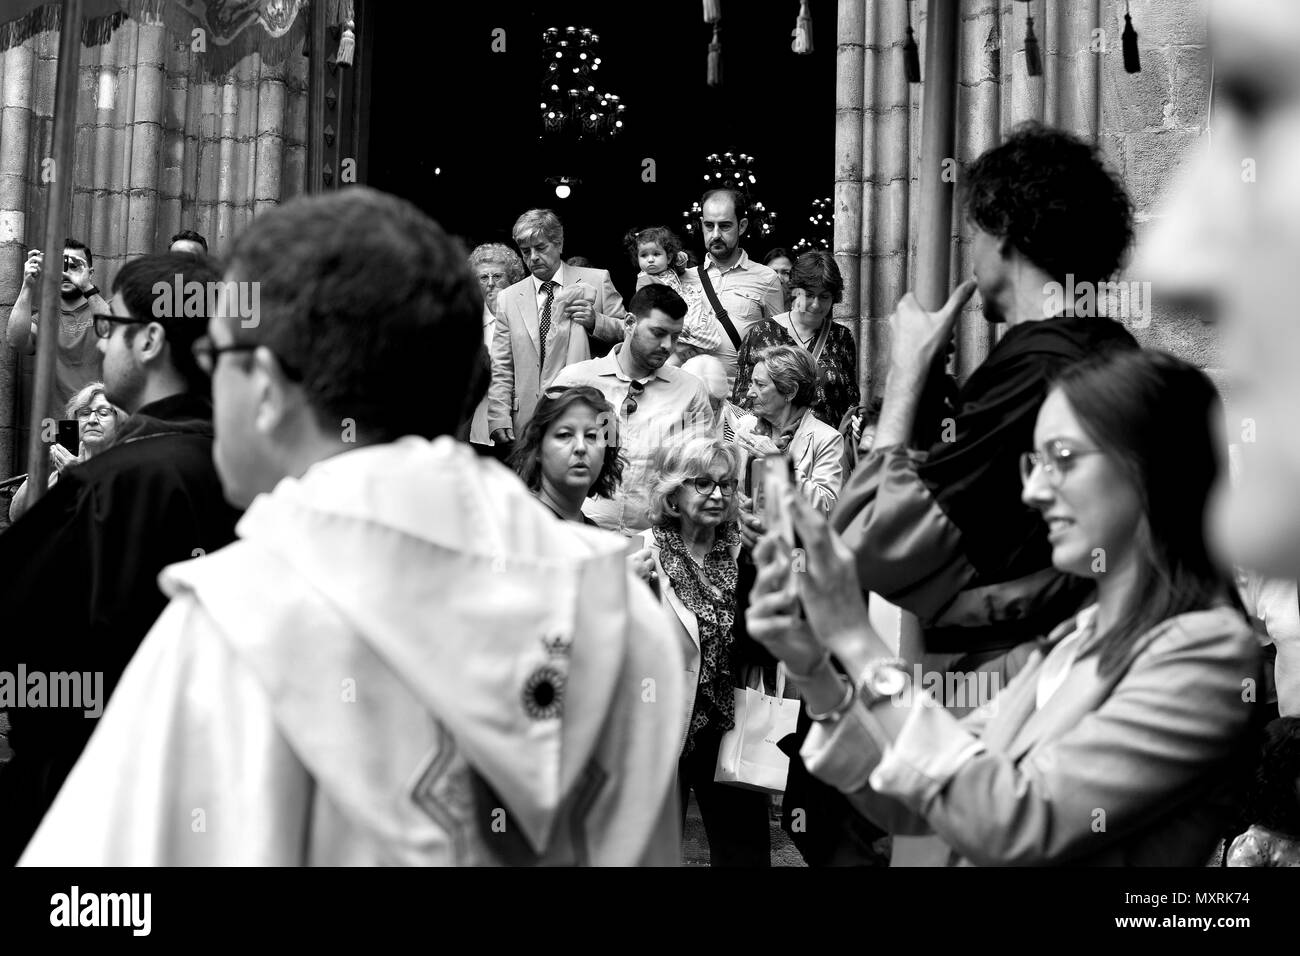 People exiting a church during a First Communion ceremony, Barcelona, Spain. - Stock Image